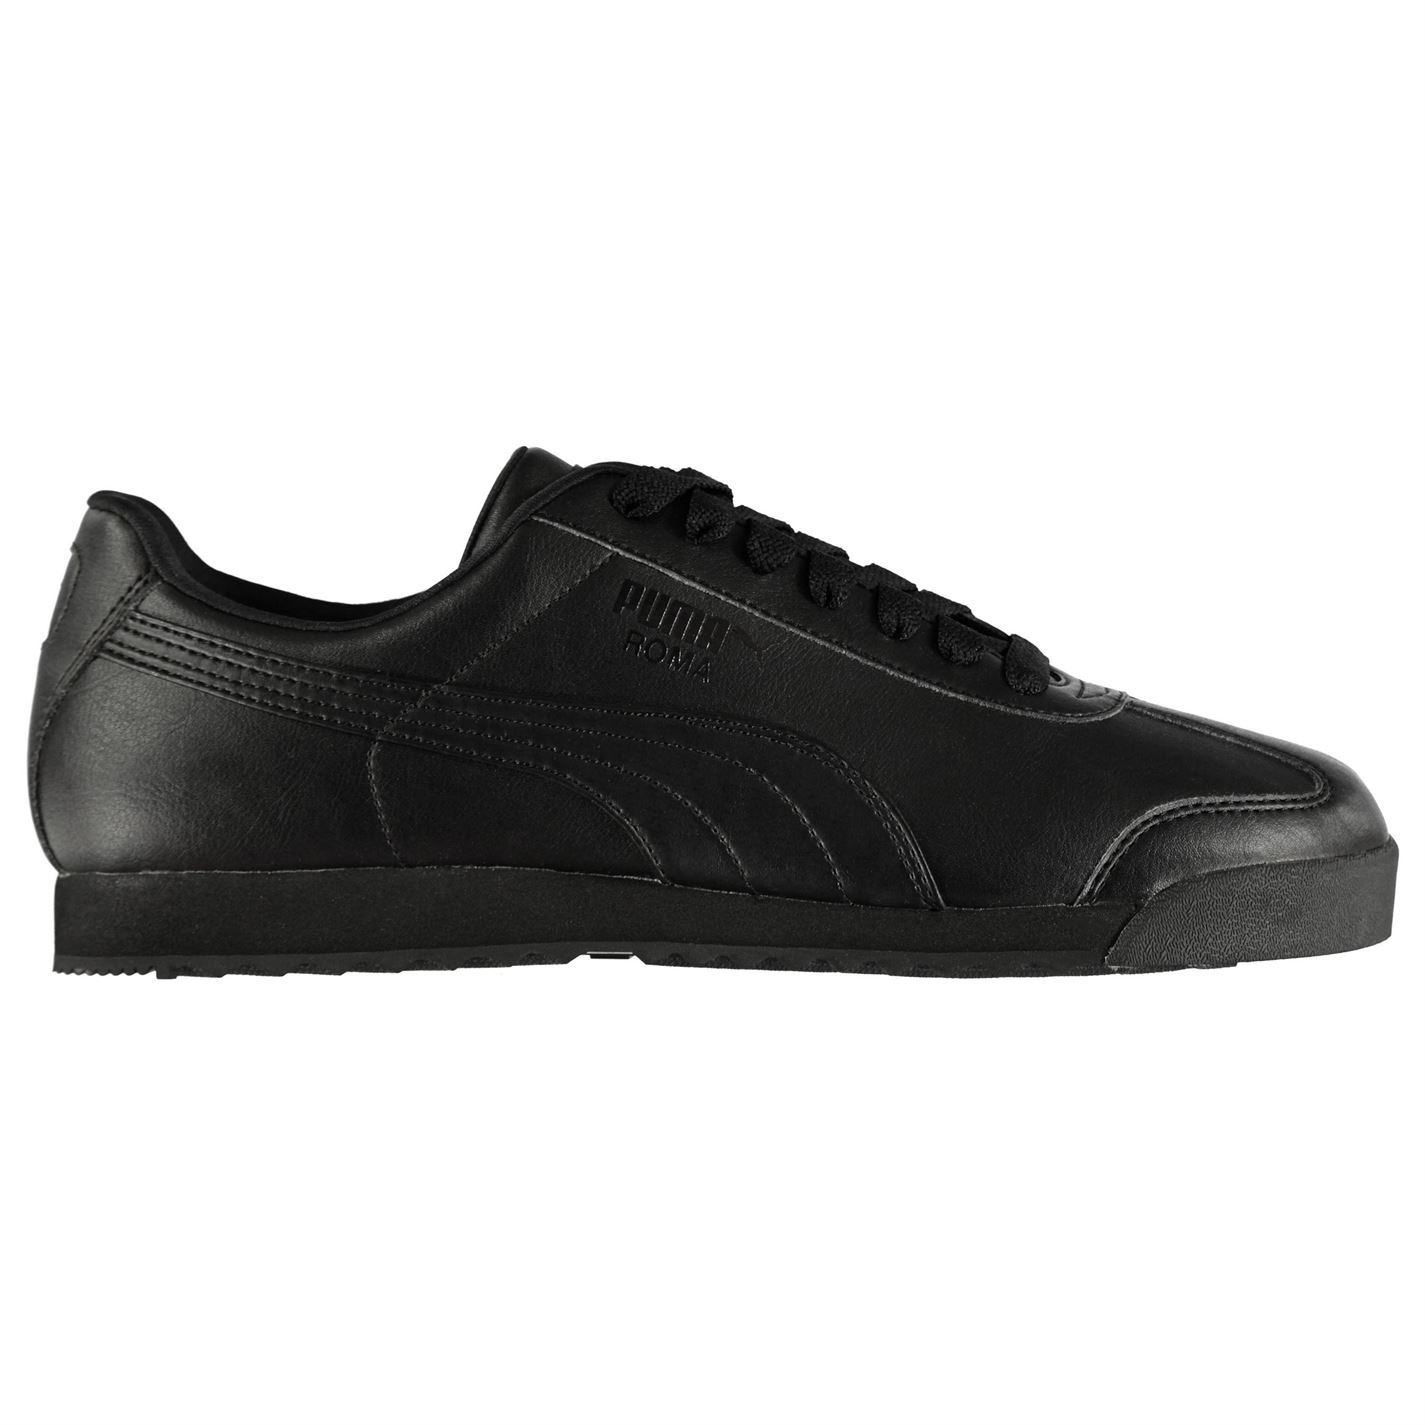 Puma-Roma-Basic-Trainers-Mens-Athleisure-Footwear-Shoes-Sneakers thumbnail 3